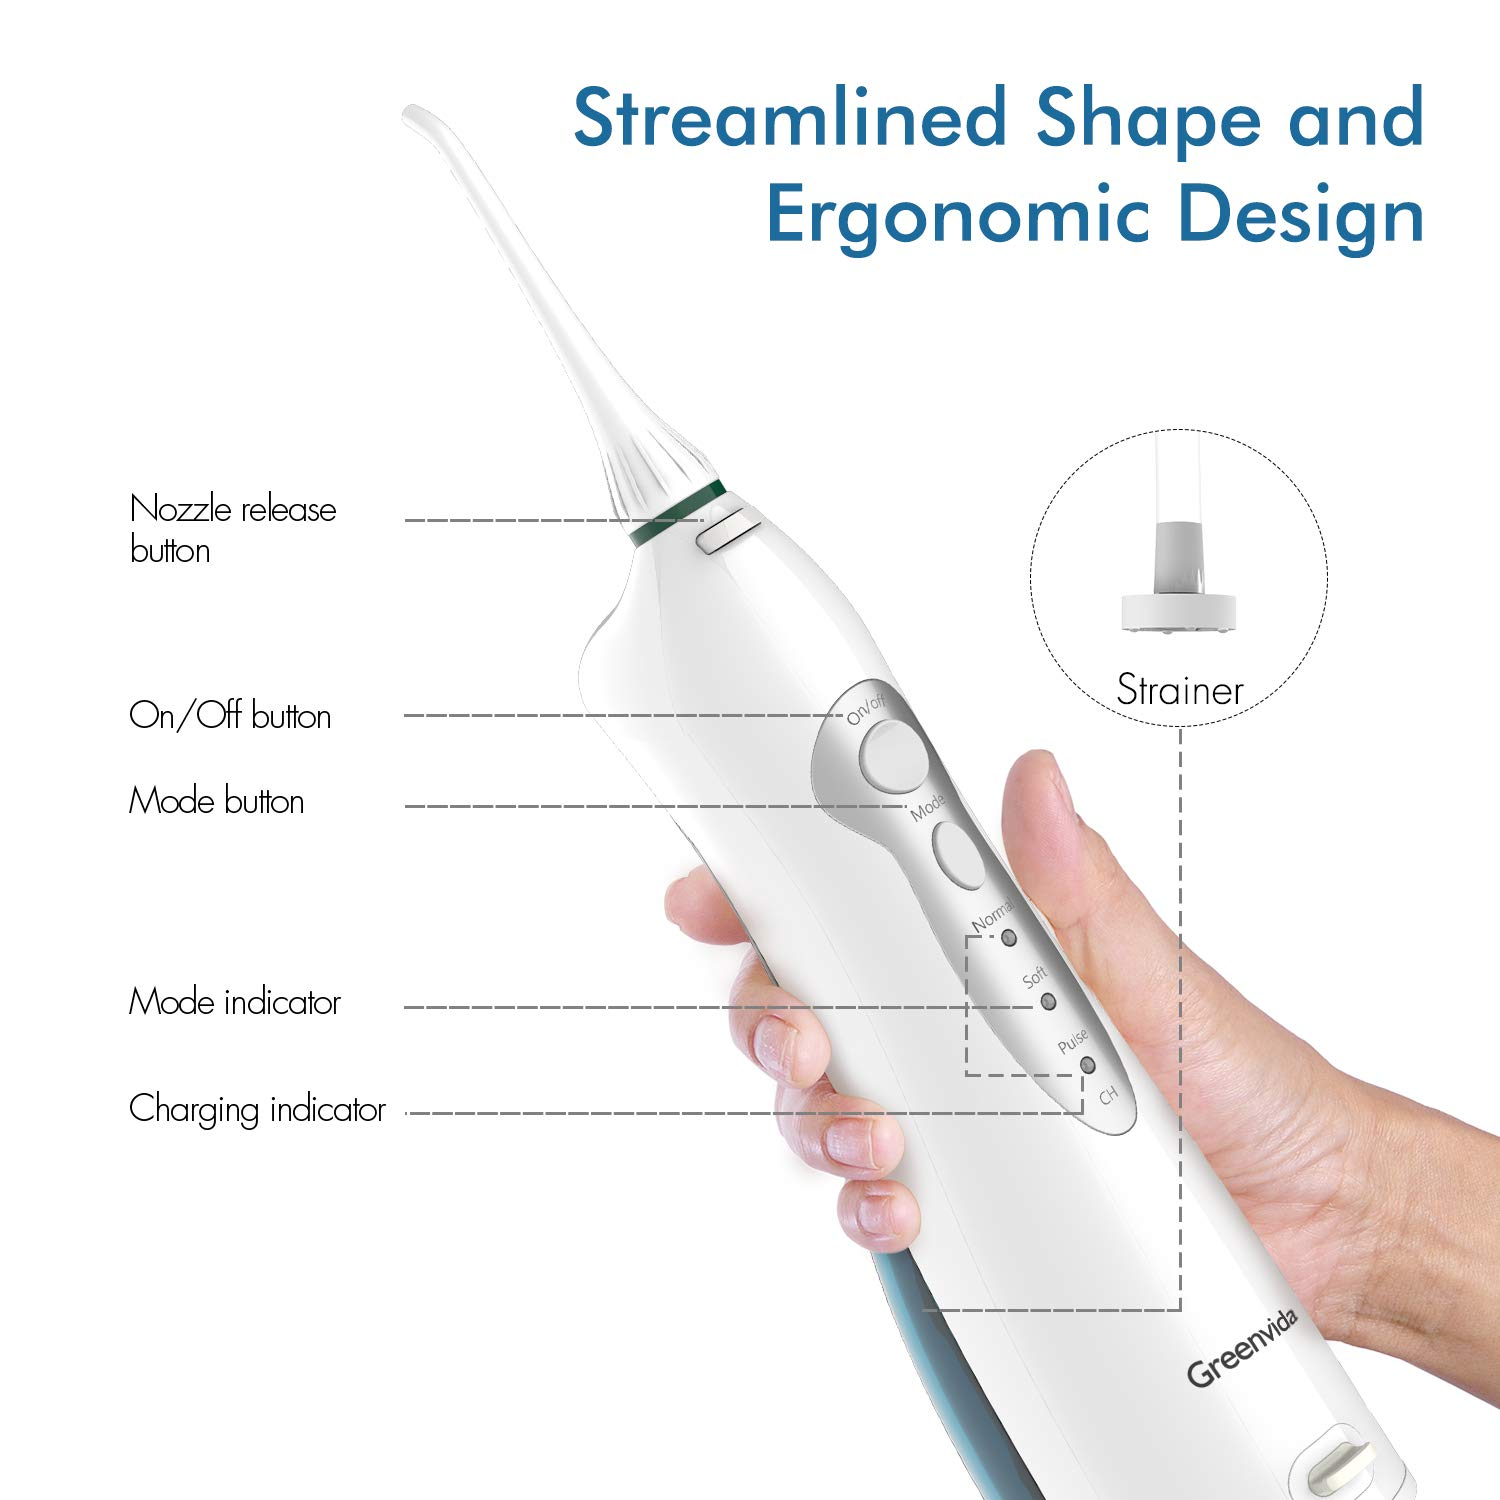 Electric Water Flosser Cordless Dental Oral Irrigator,Water Flosser Portable Rechargeable With 3 Modes & 4 Jet Tips,Electric Oral Irrigator IPX7 Waterproof for Kids and People with Braces by Greenvida (Image #3)